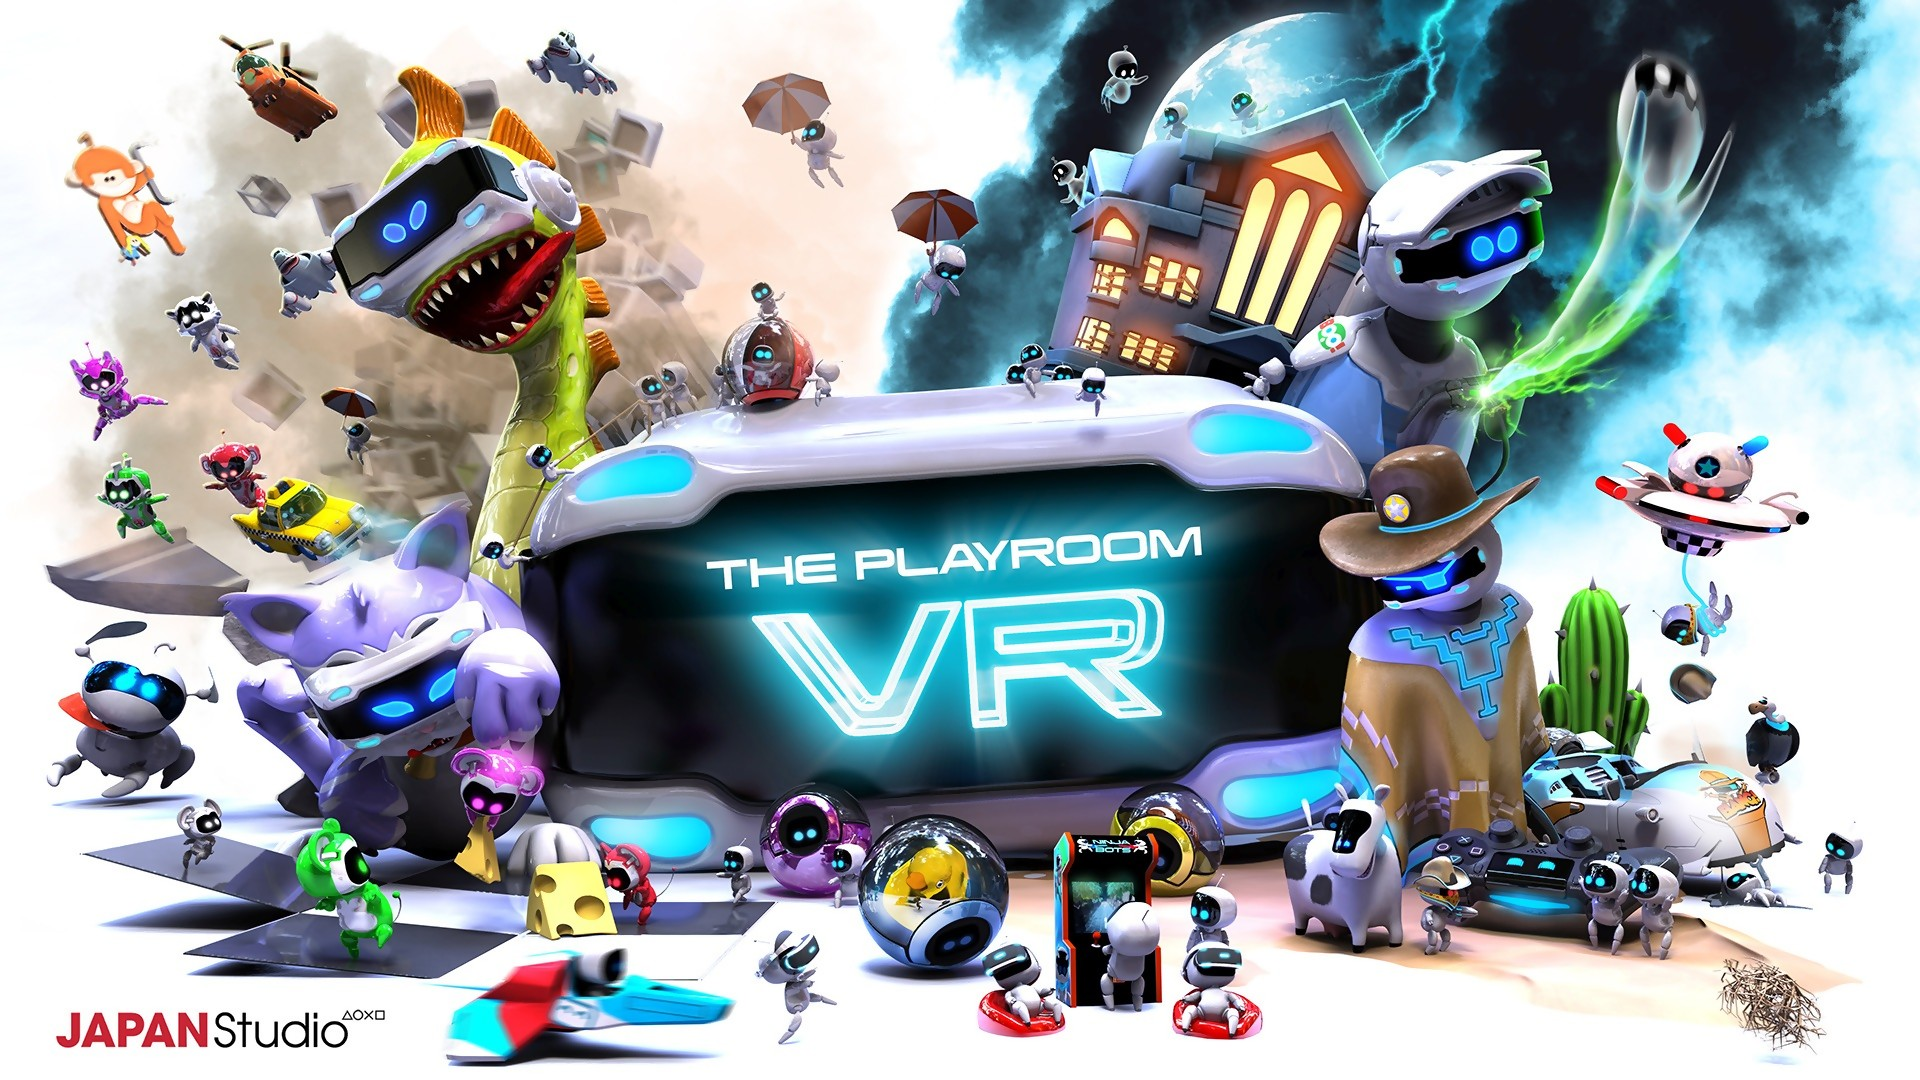 The Playroom VR s'offre un trailer